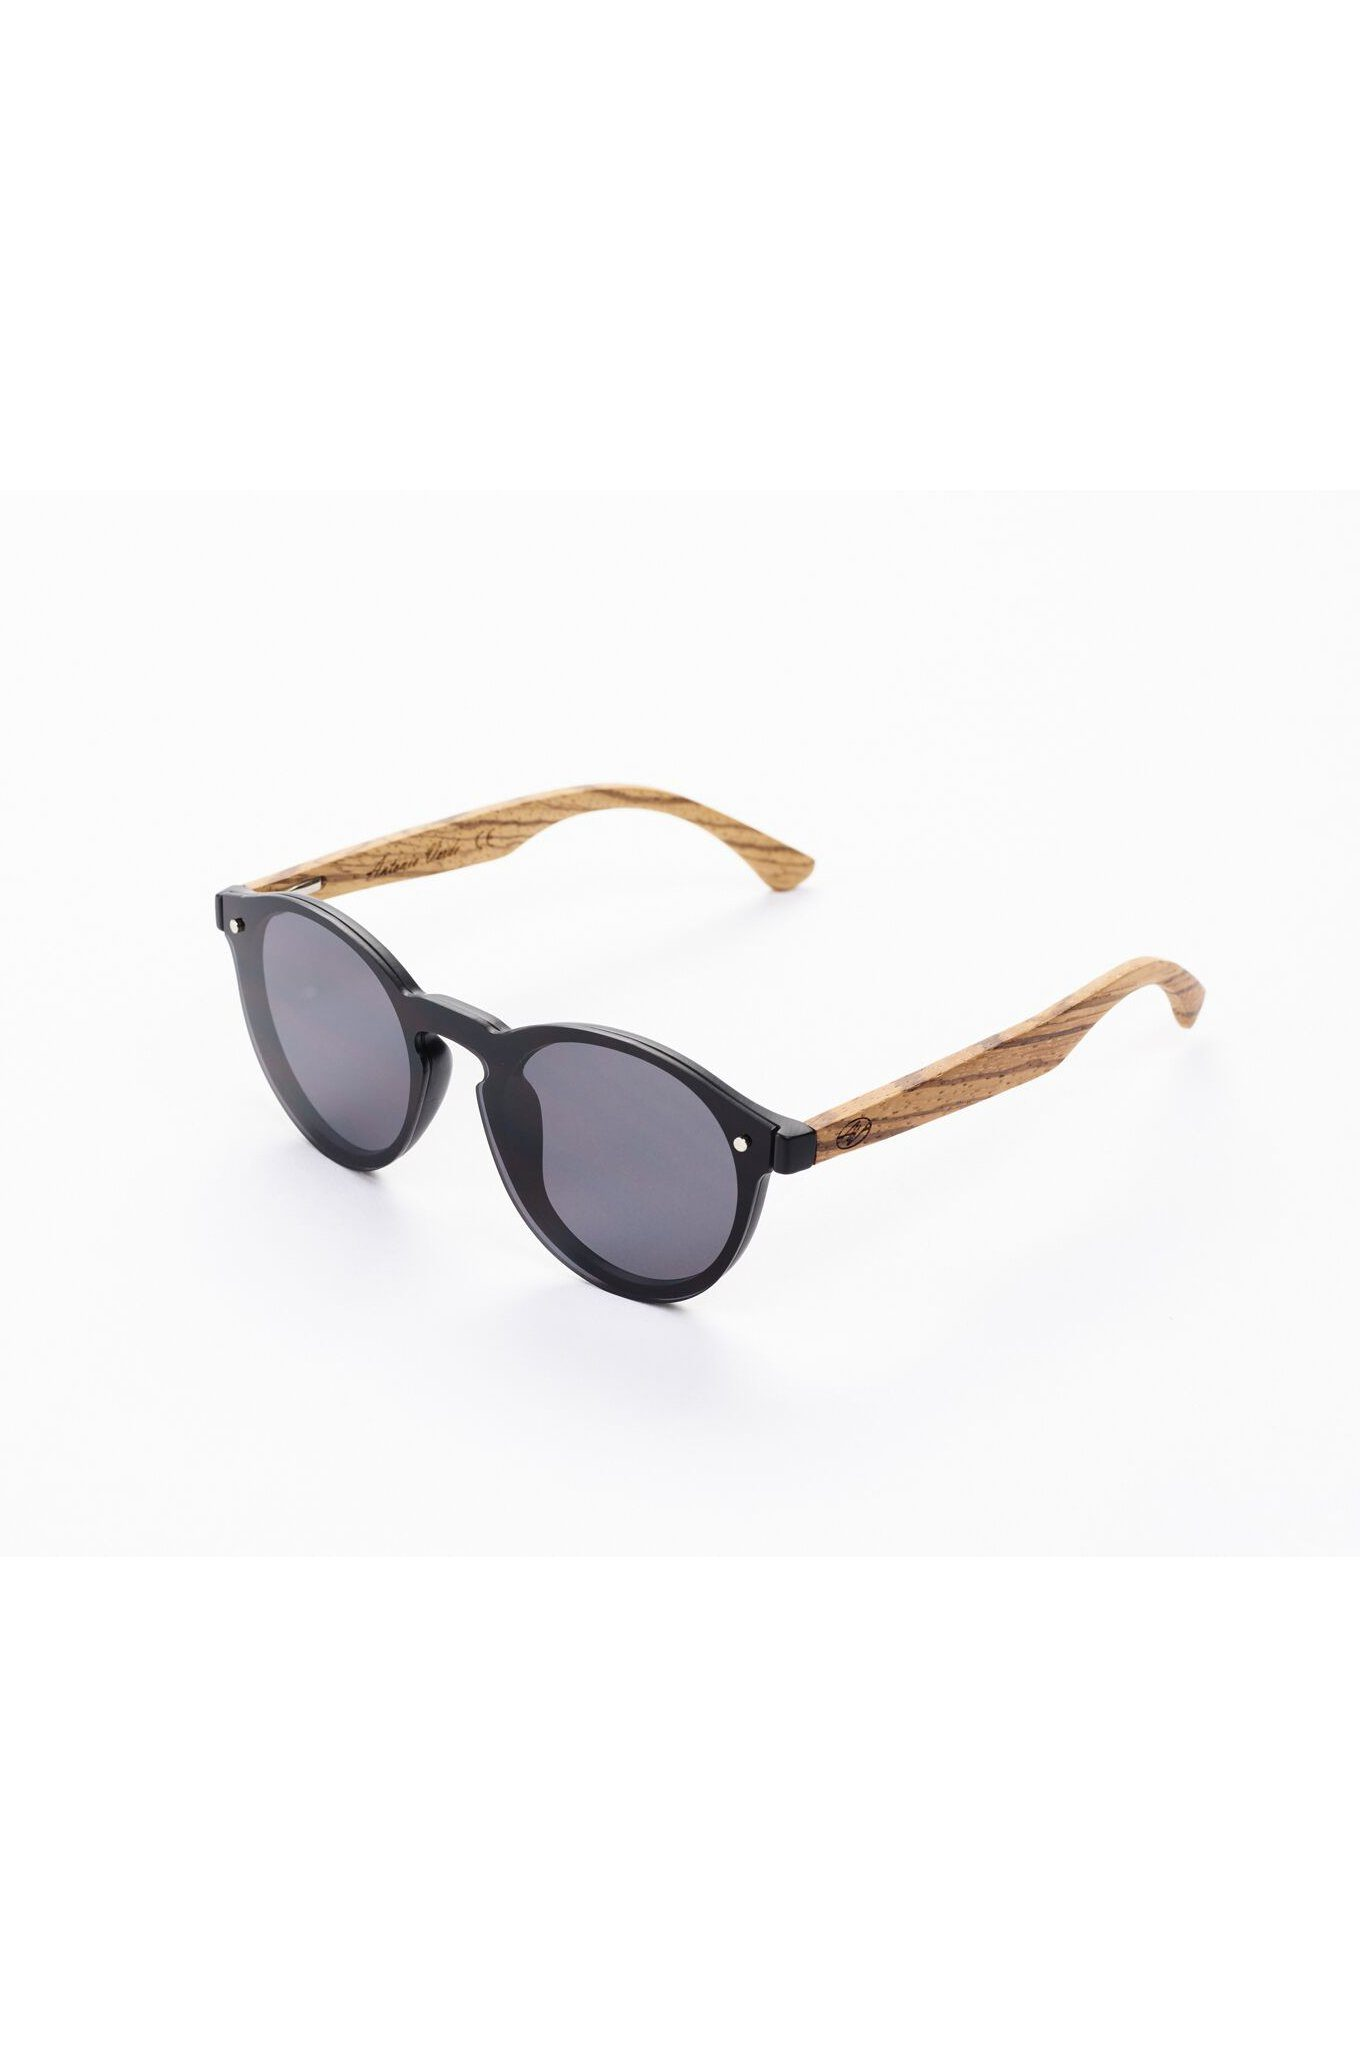 San Antonio Raven Sunglasses - Komodo Fashion